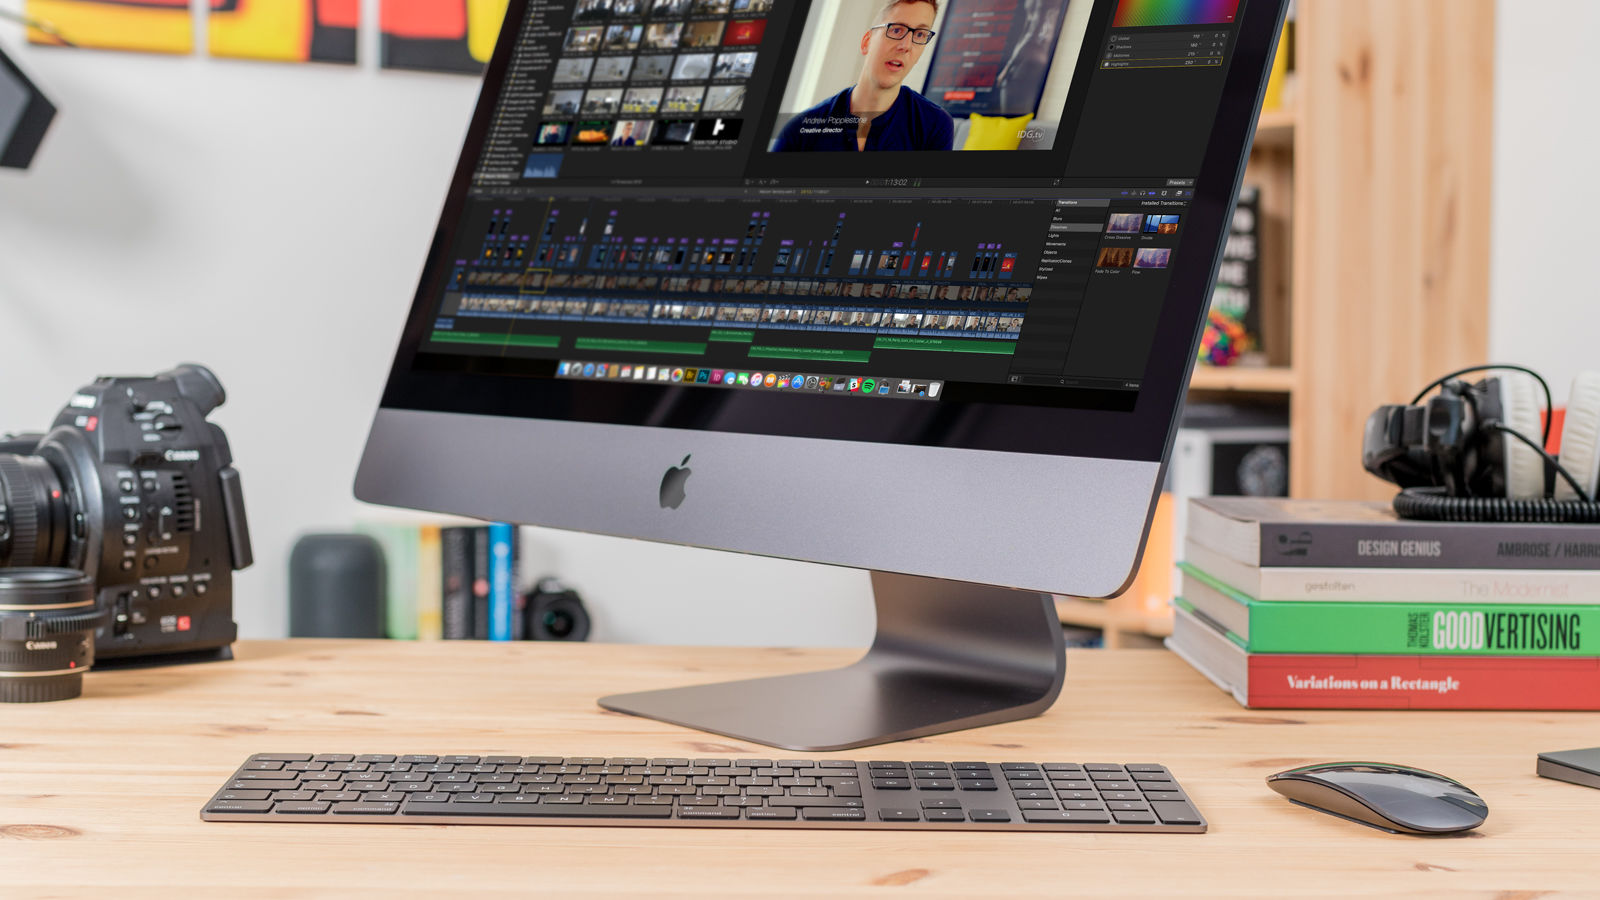 Apple iMac Pro review: a beautifully designed workstation